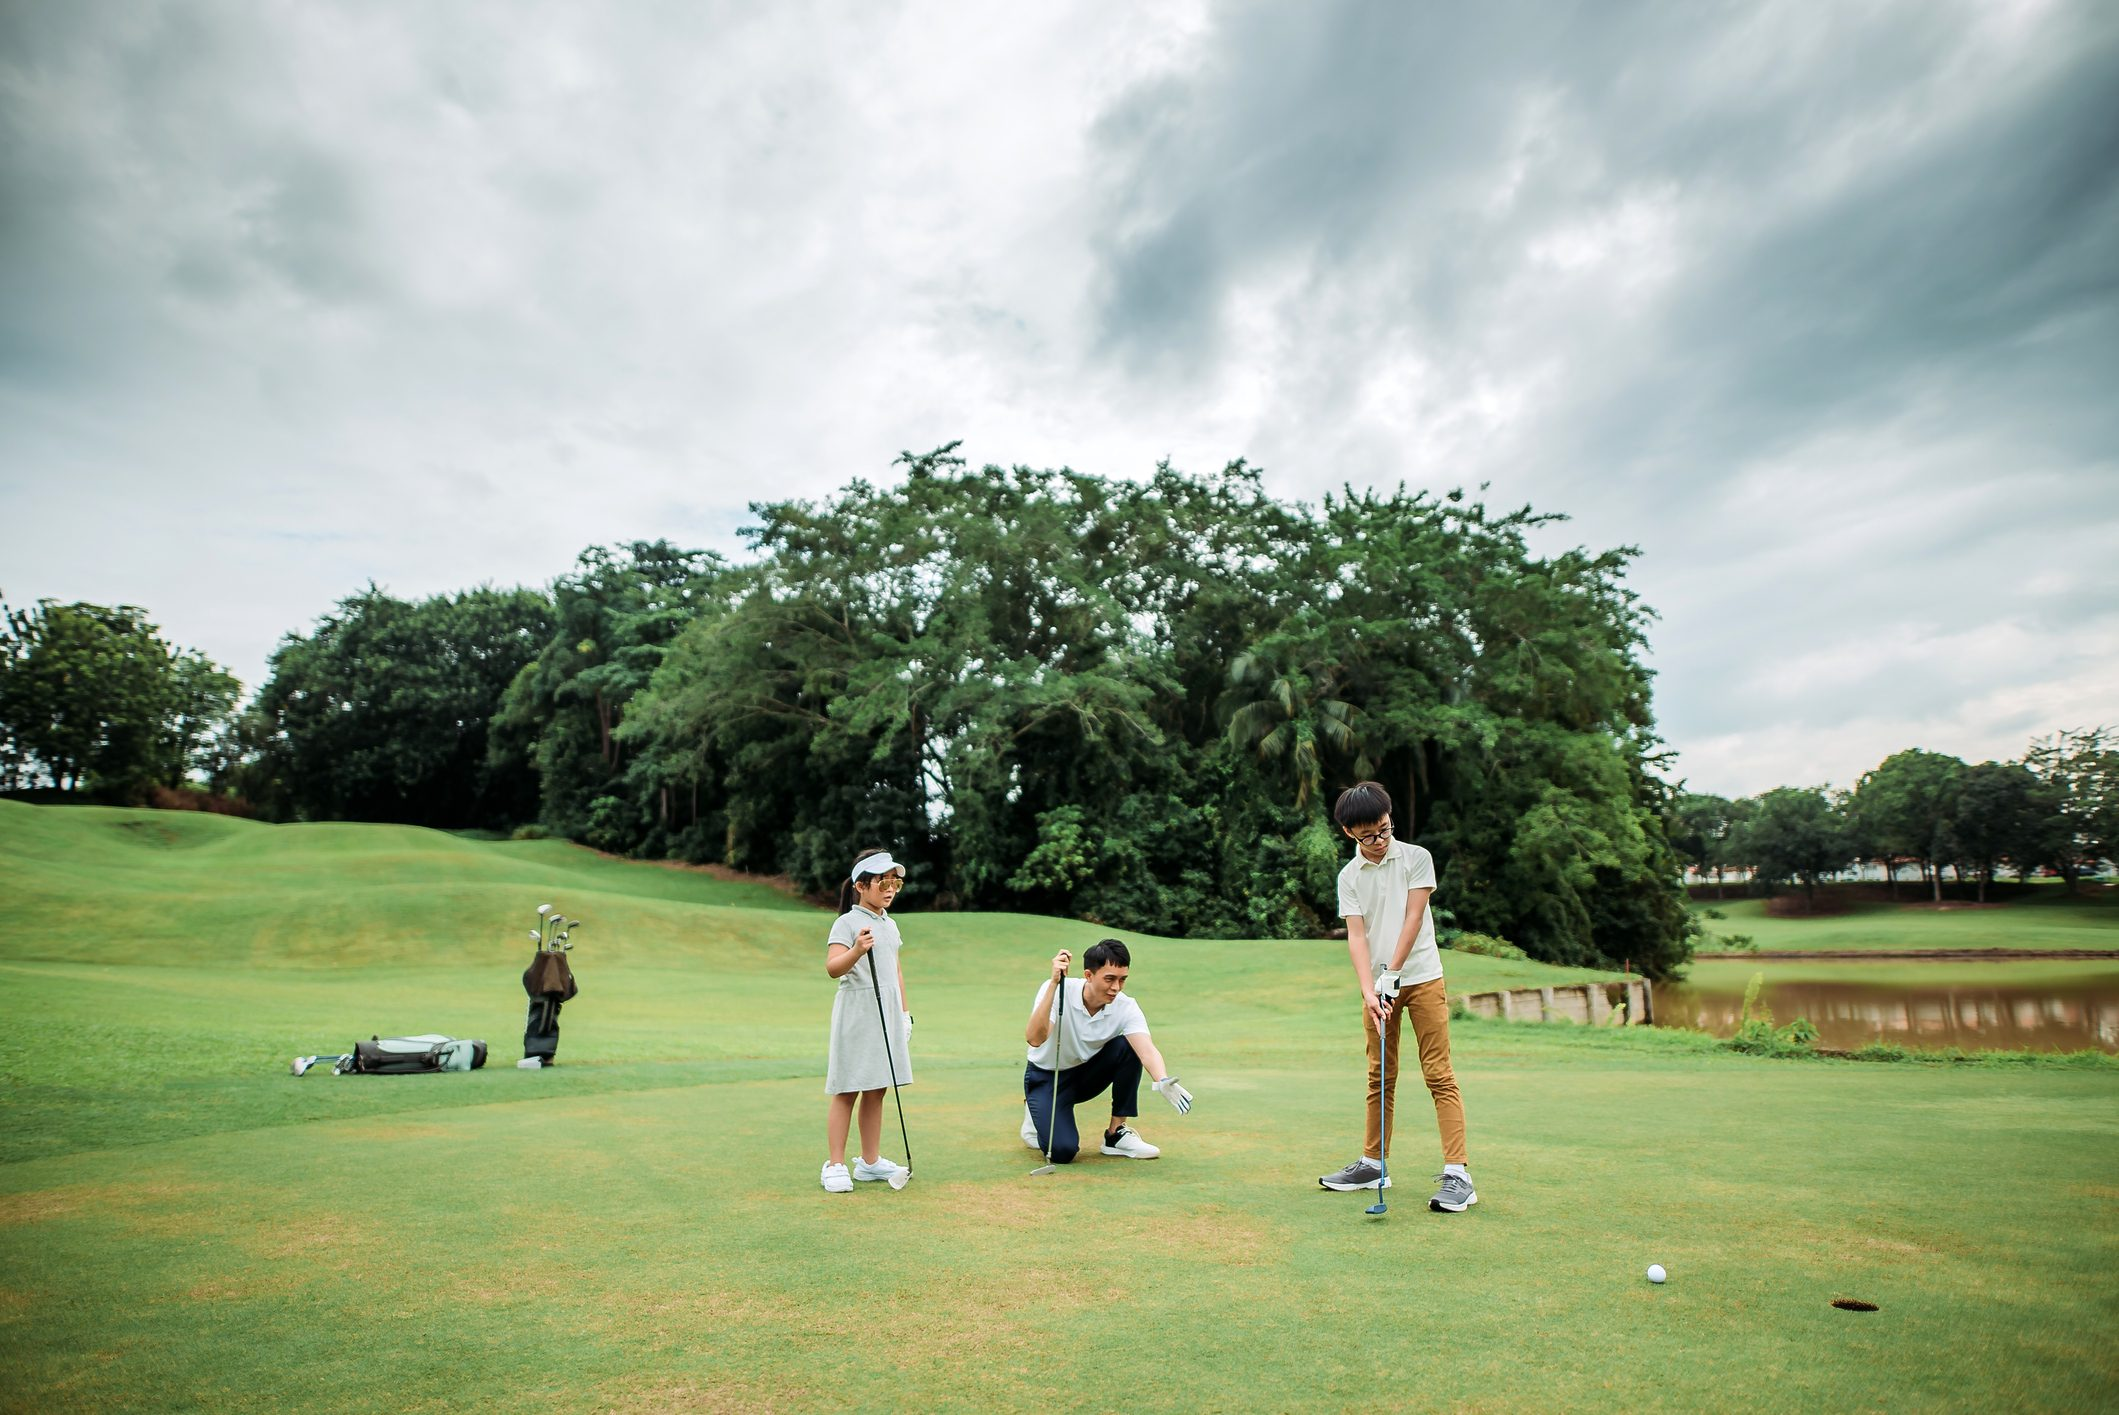 father golfing with son and daughter on father's day